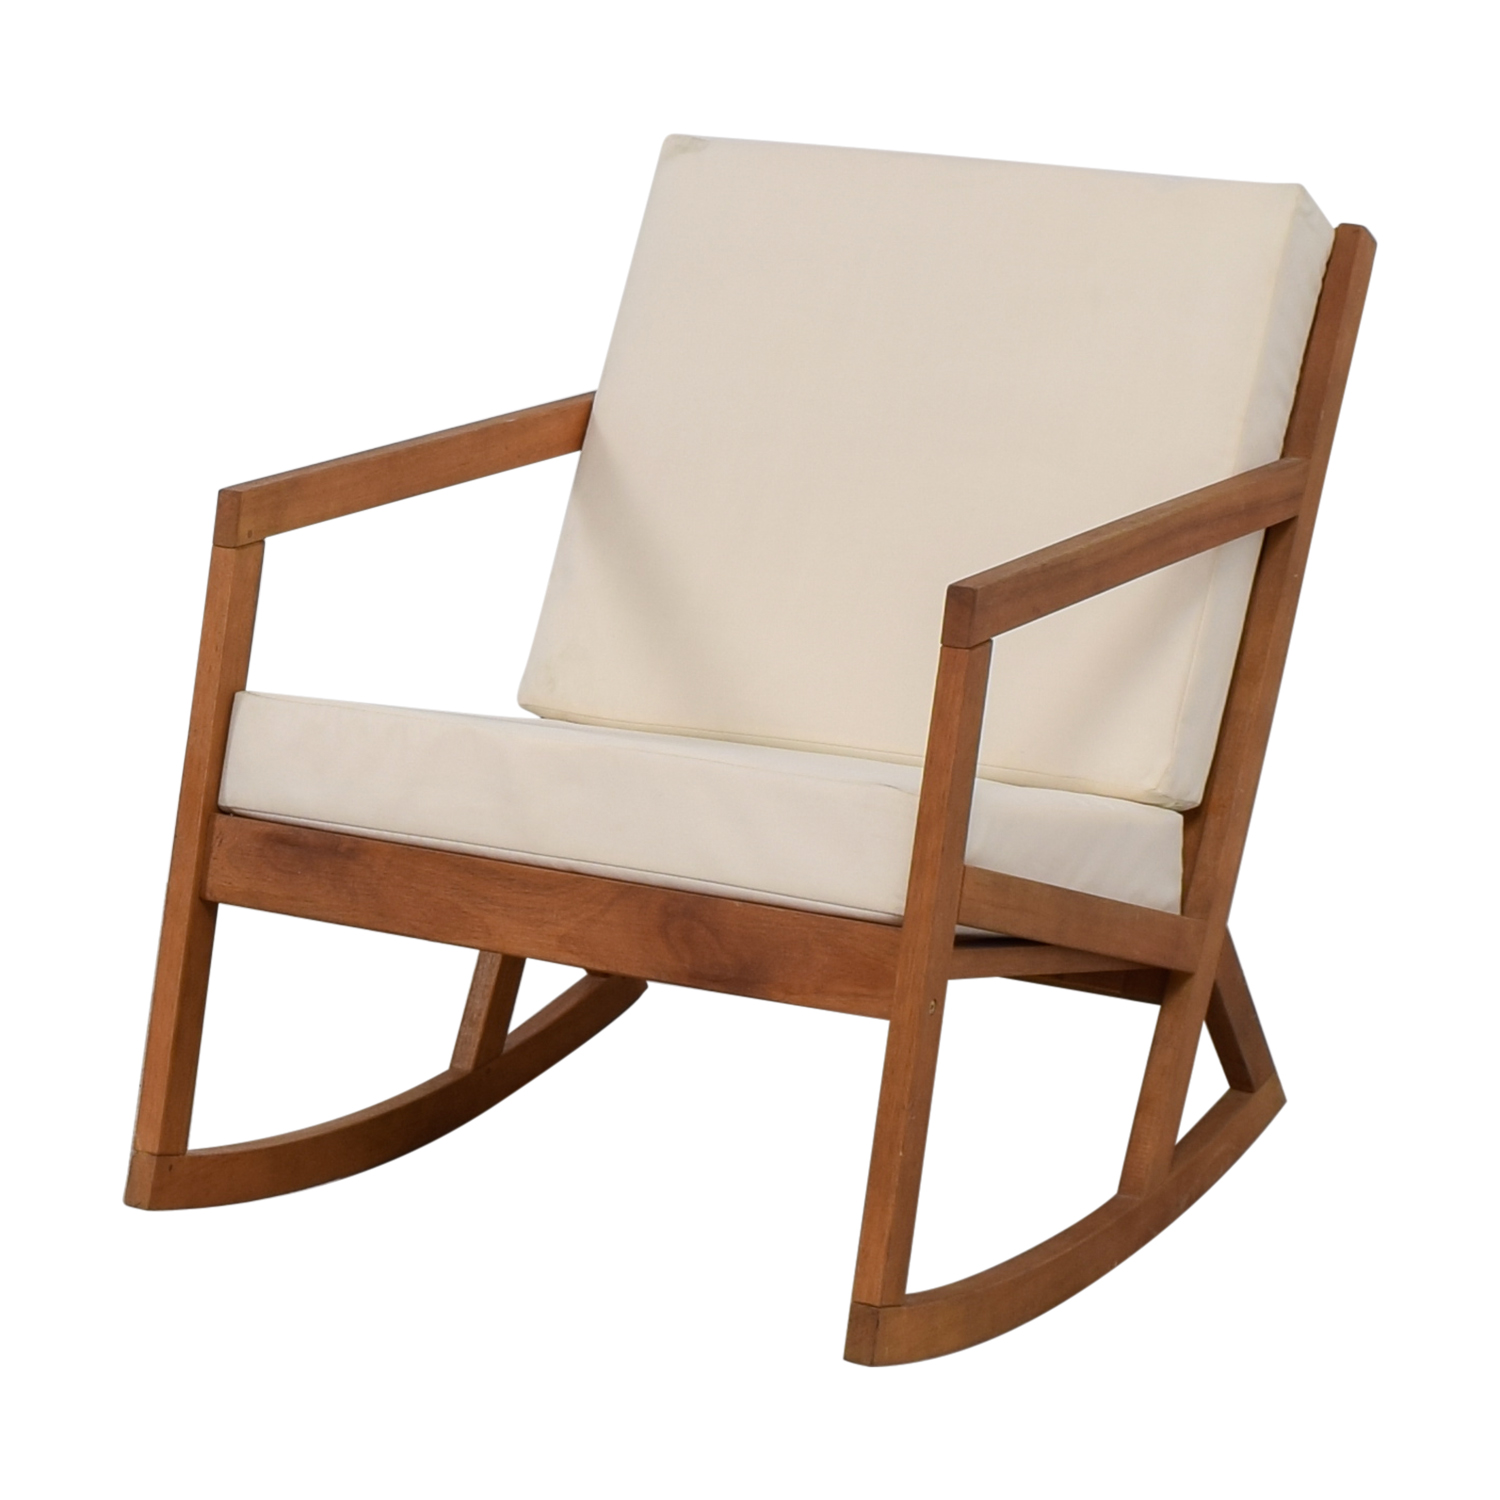 Upholstered Rocking Chair 55 Off Safavieh Safavieh White Upholstered Wood Rocking